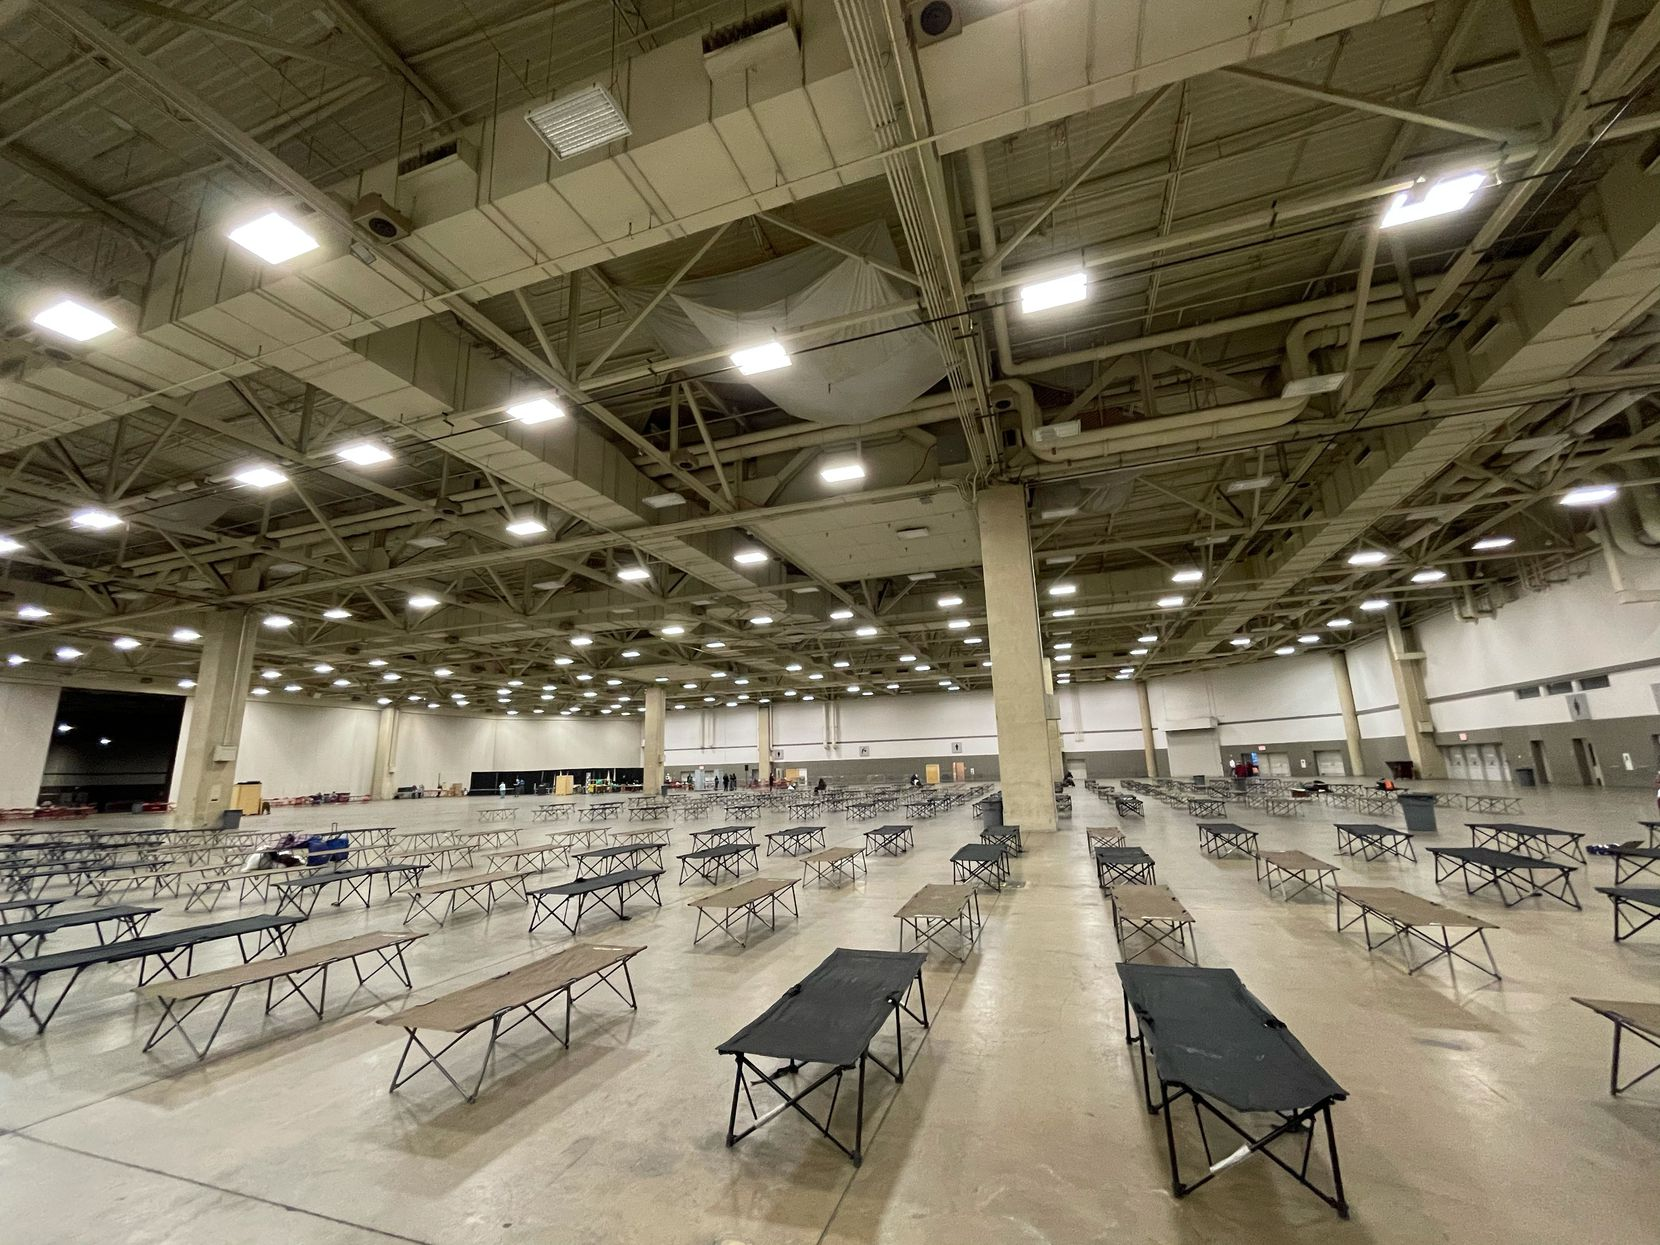 The Kay Bailey Hutchison convention center in Dallas opened Feb. 12 to shelter the homeless during the subfreezing temperatures predicted for the coming days. The City's Office of Emergency Solutions is providing the cots and Shoreline City Church has donated pallets of masks. Breakfast, lunch and dinner - prepared at the kitchens of OurCalling, Salvation Army and The Stewpot - will be served daily. (Ali Hendricksen)